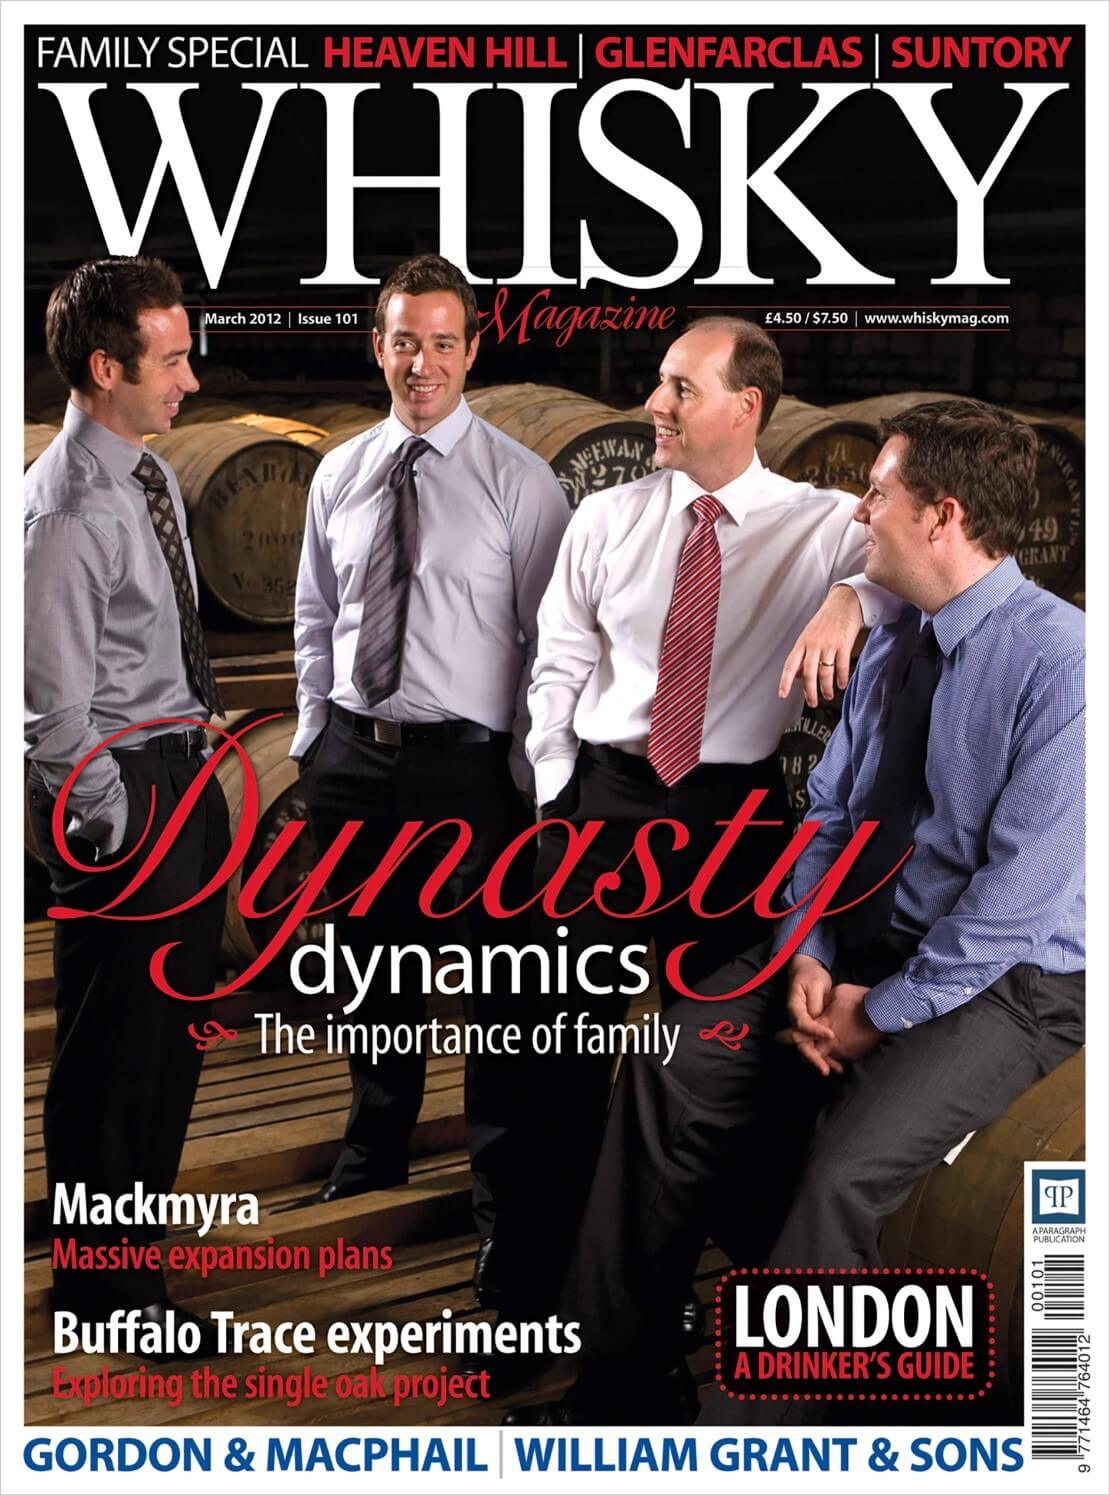 Whisky families Mackmyra Buffalo Trace Drinker's guide to London